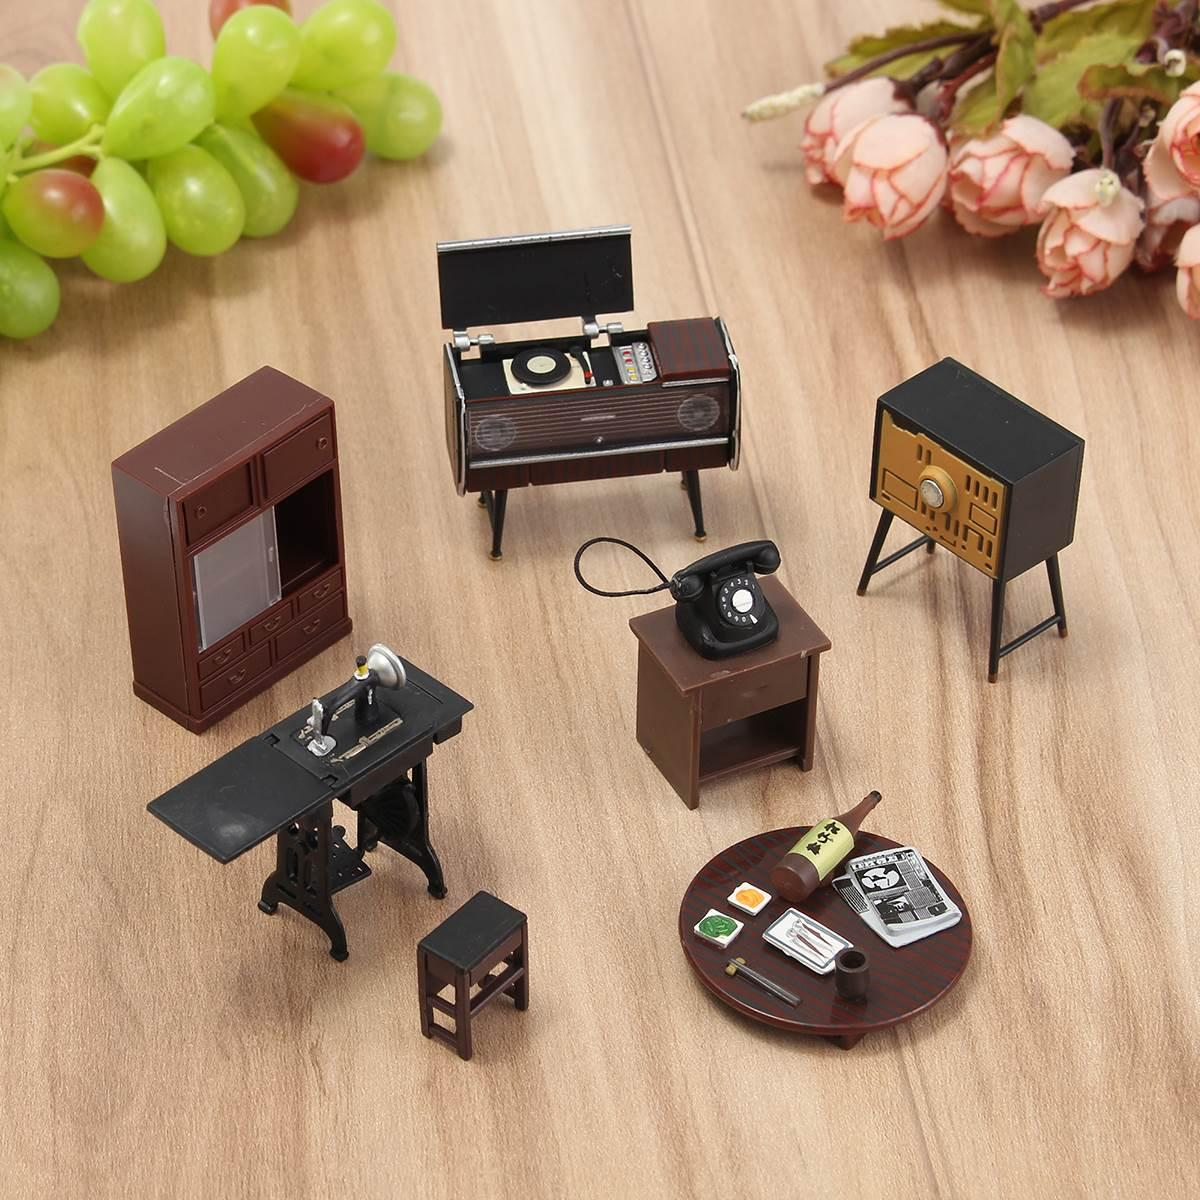 Wholesale Wooden DIY 1:12 Simulation Miniature Dollhouse Furniture Mini  Furniture Set For Children Dolls House Accessories Miniature Dollhouse Doll  House ...